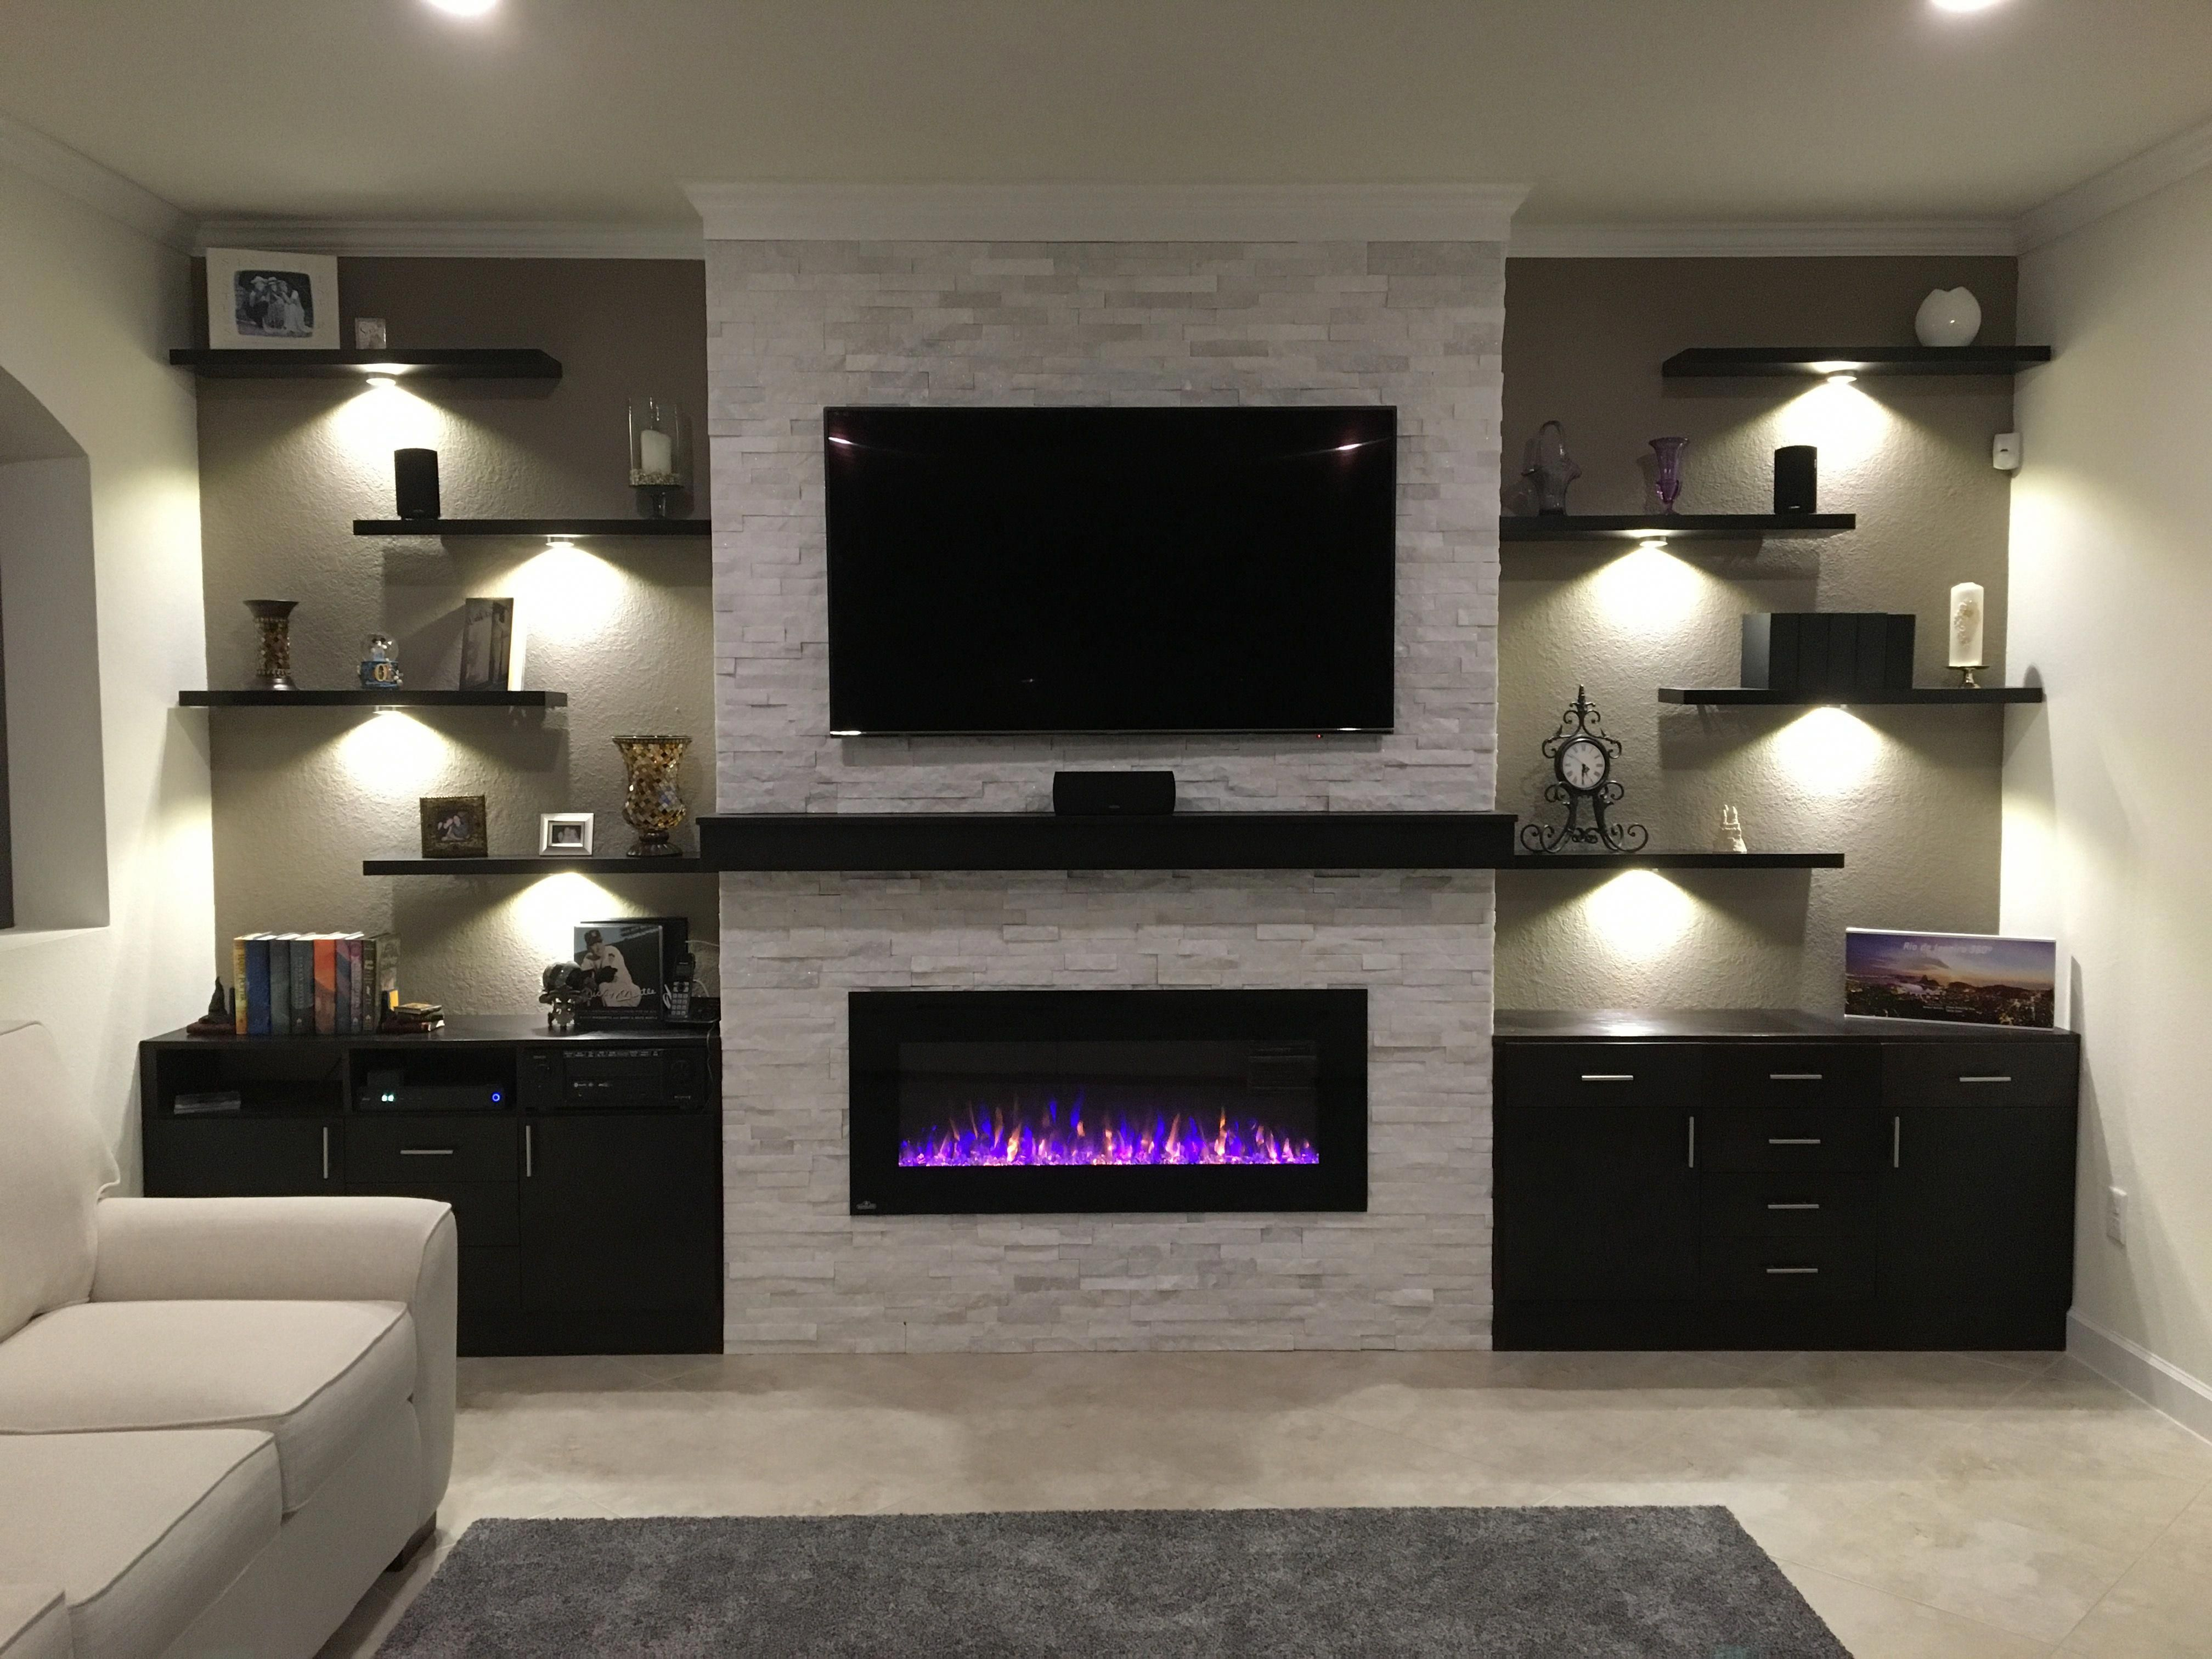 35 Essential Shelf Decor Ideas A Guide To Style Your Home Trendy Living Rooms Living Room With Fireplace Living Room Tv Wall